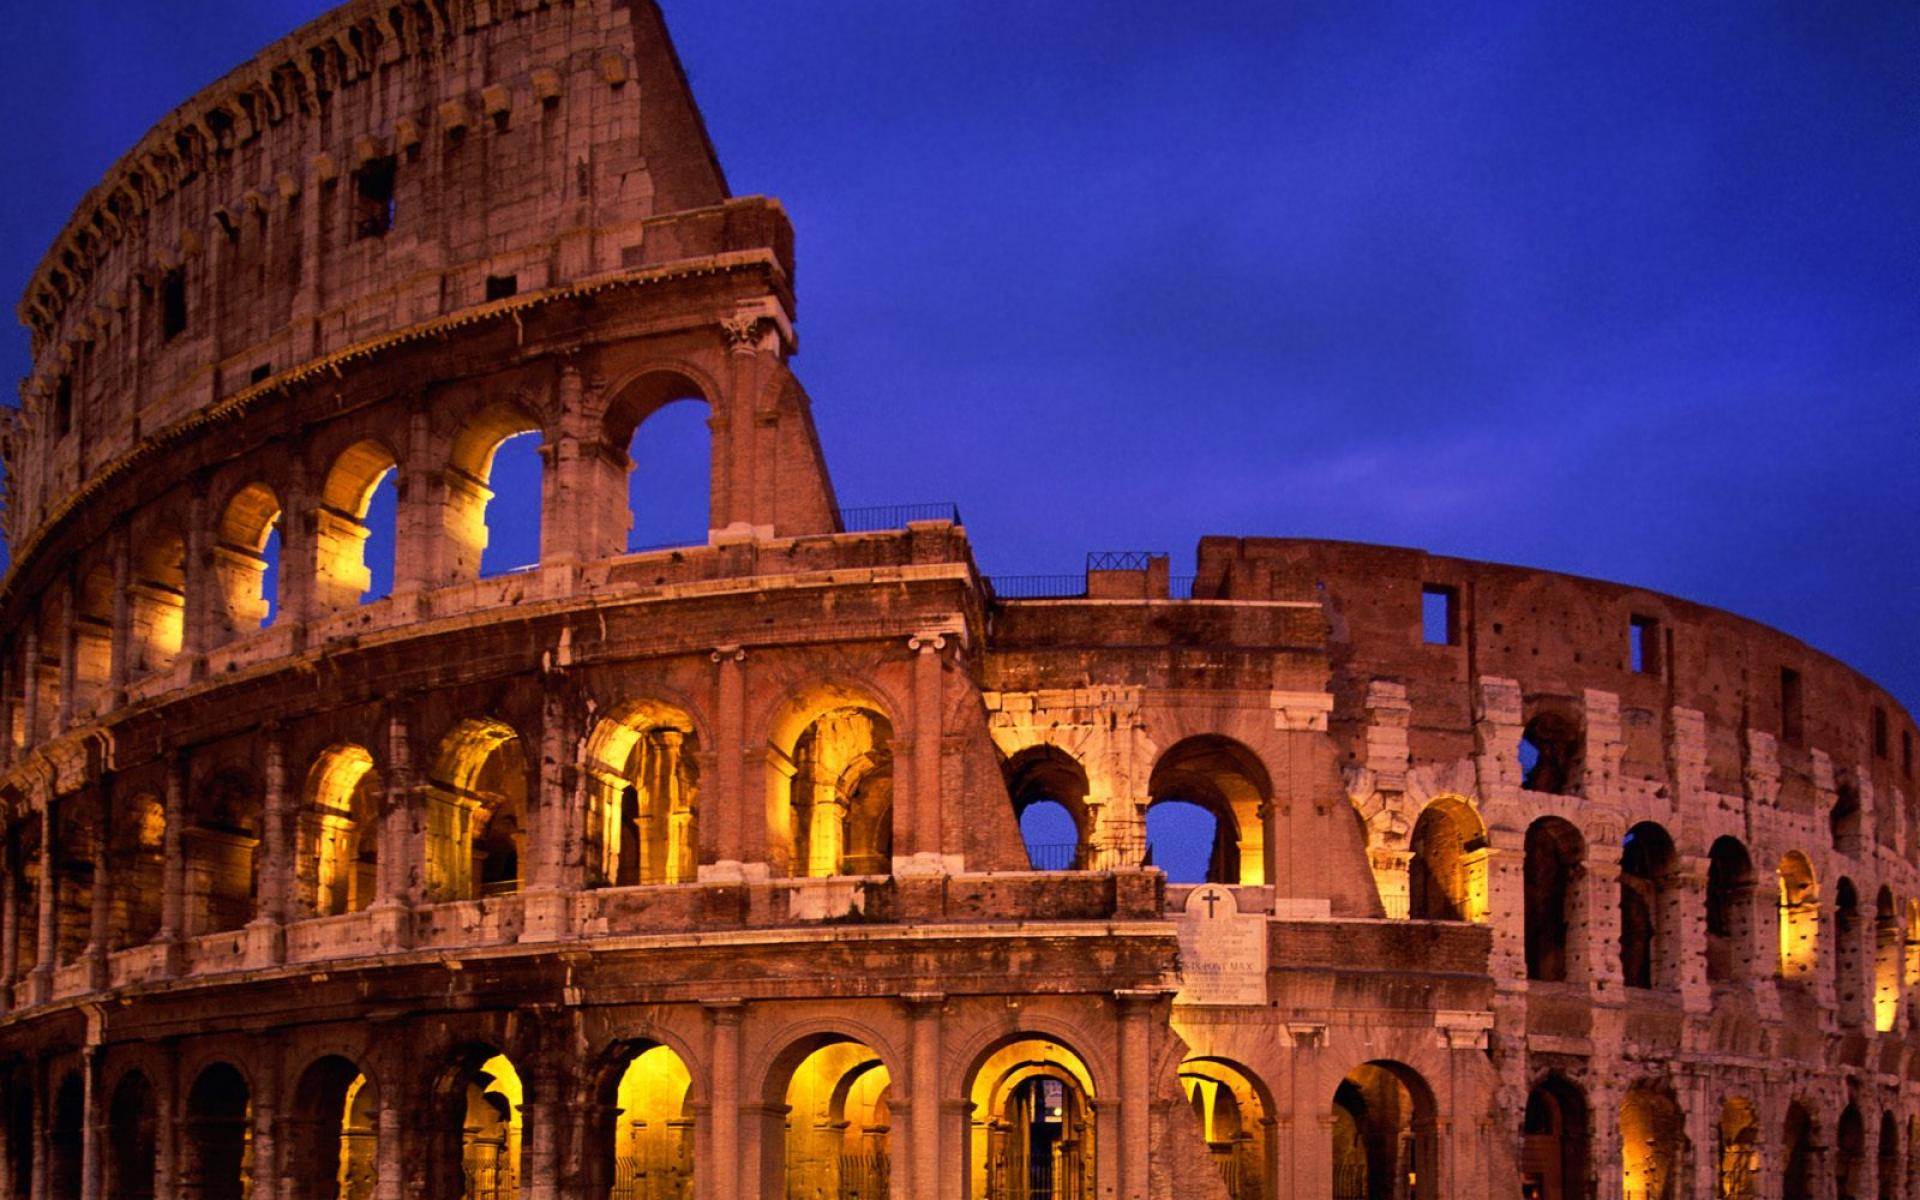 Architecture The Colosseum Of Rome Ancient 272122 Wallpaper Wallpaper